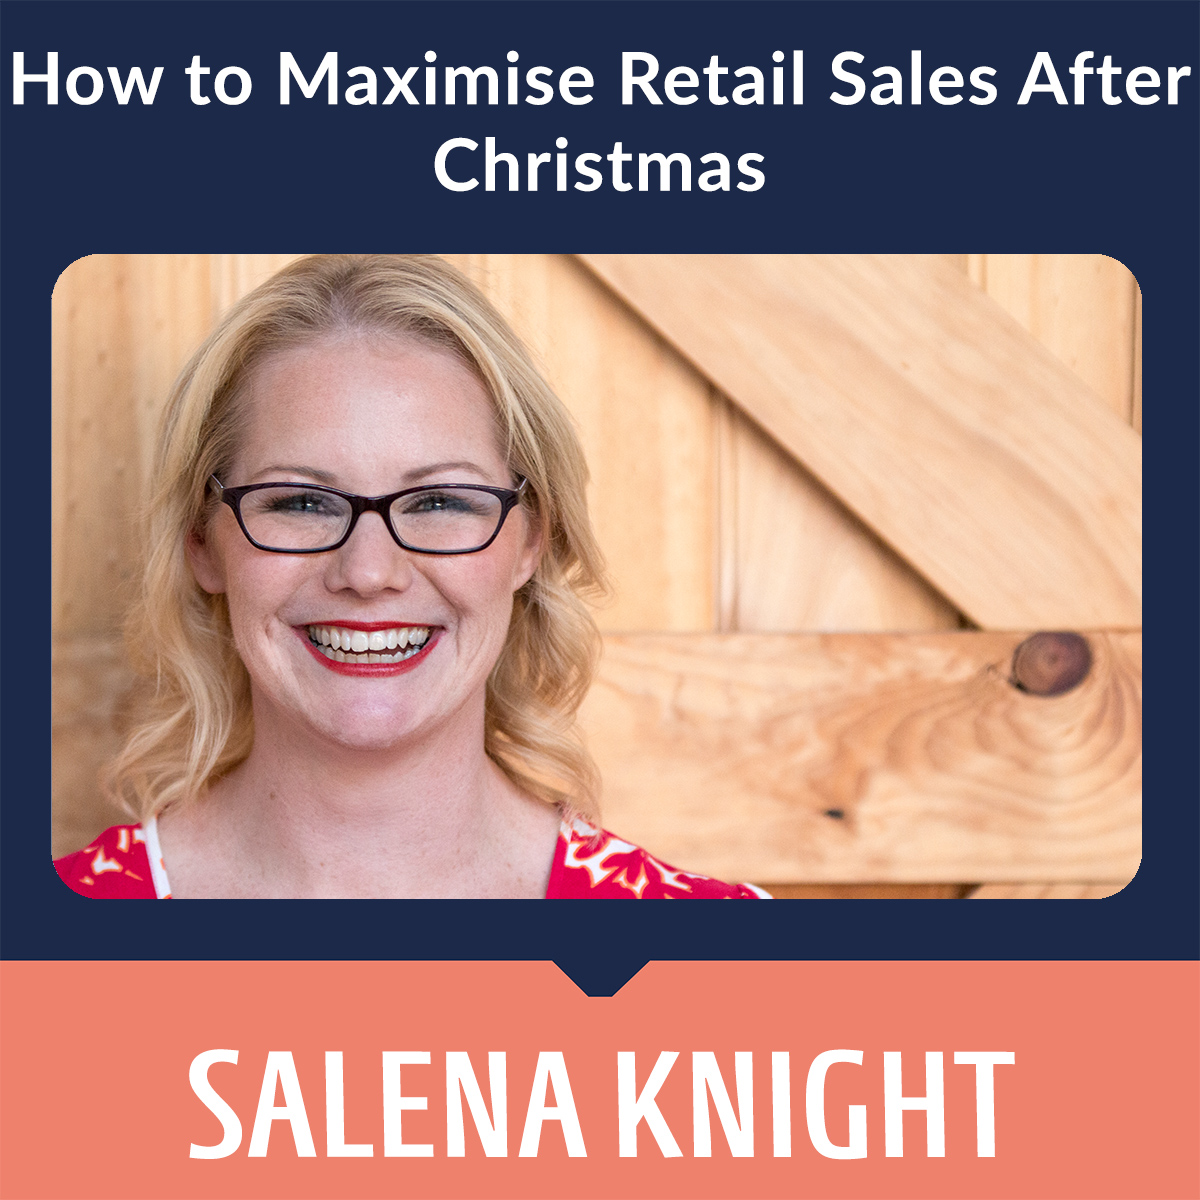 How_to_maximise_retail_sales_after_christmas_sqr